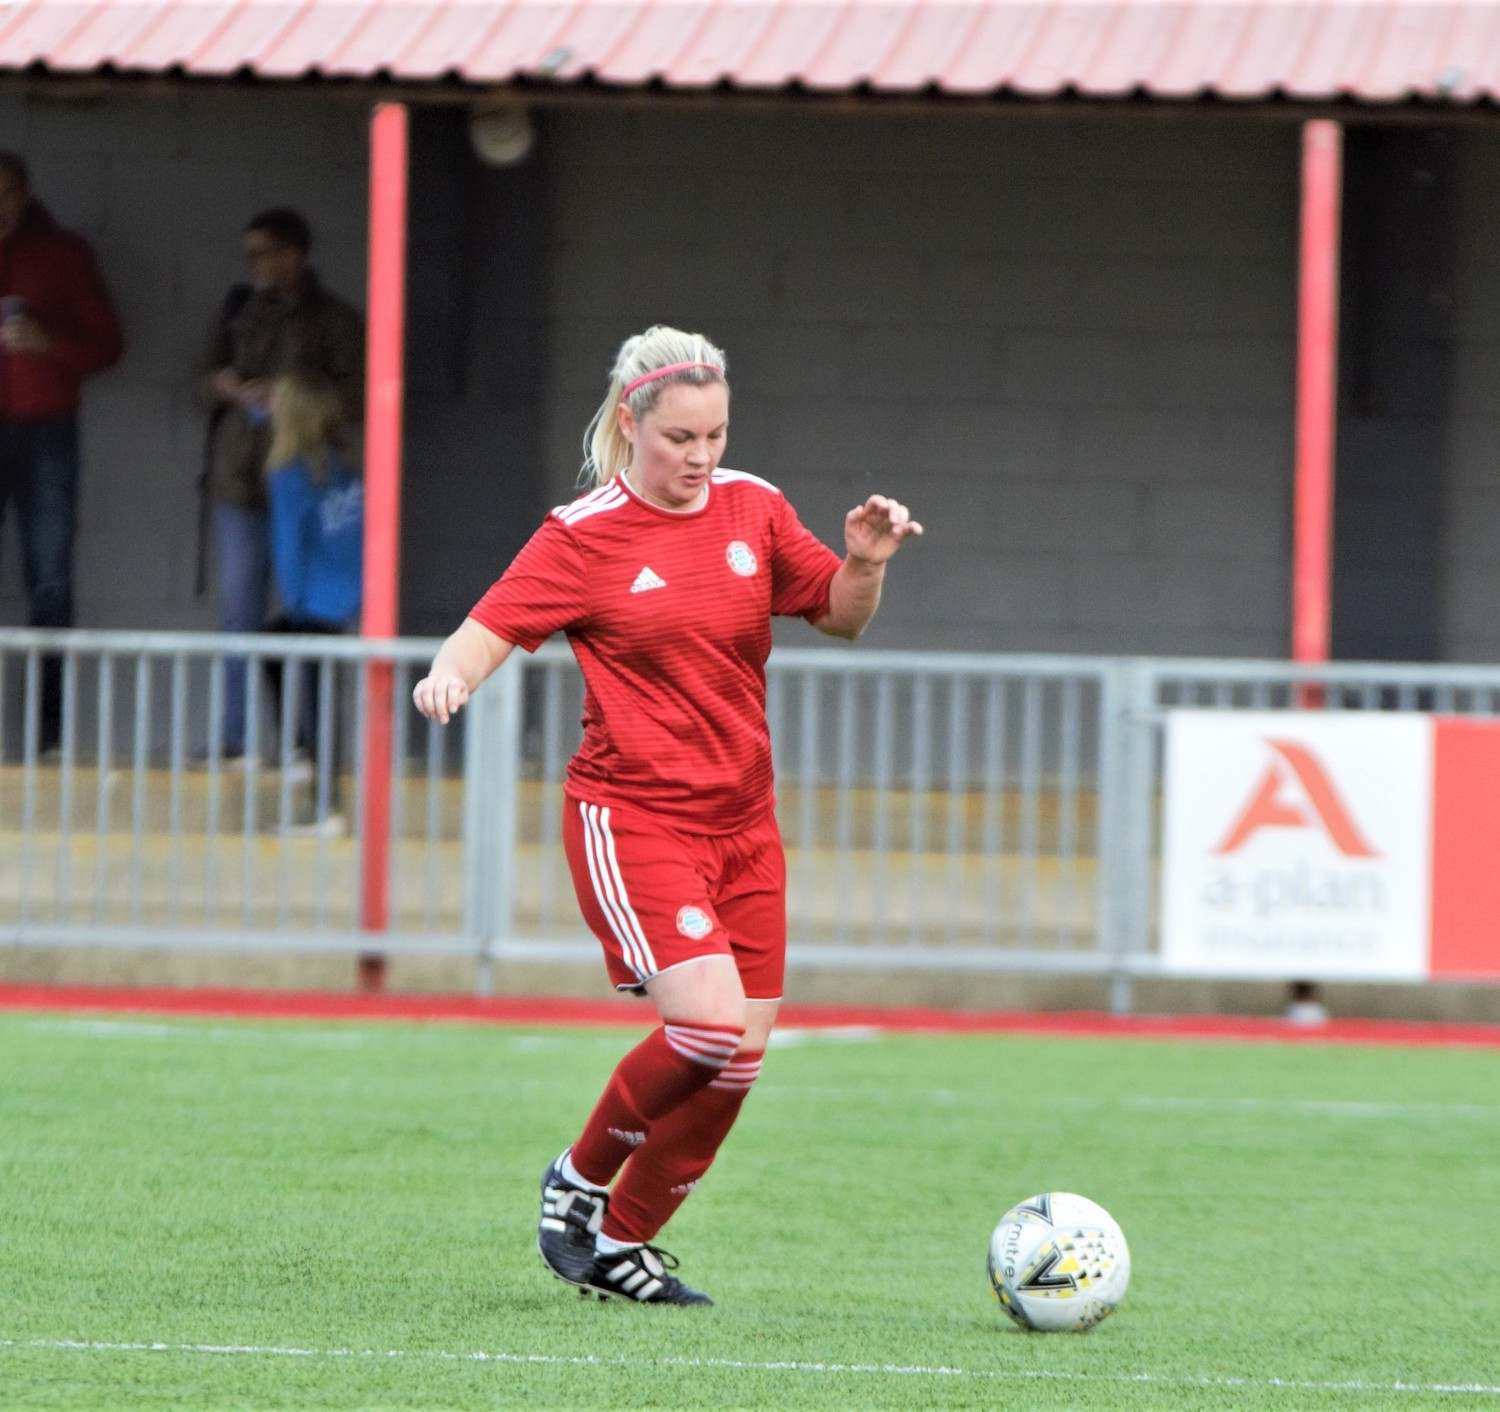 Read the full article - Reds Breeze Past Bexhill To Reach Semi-Finals